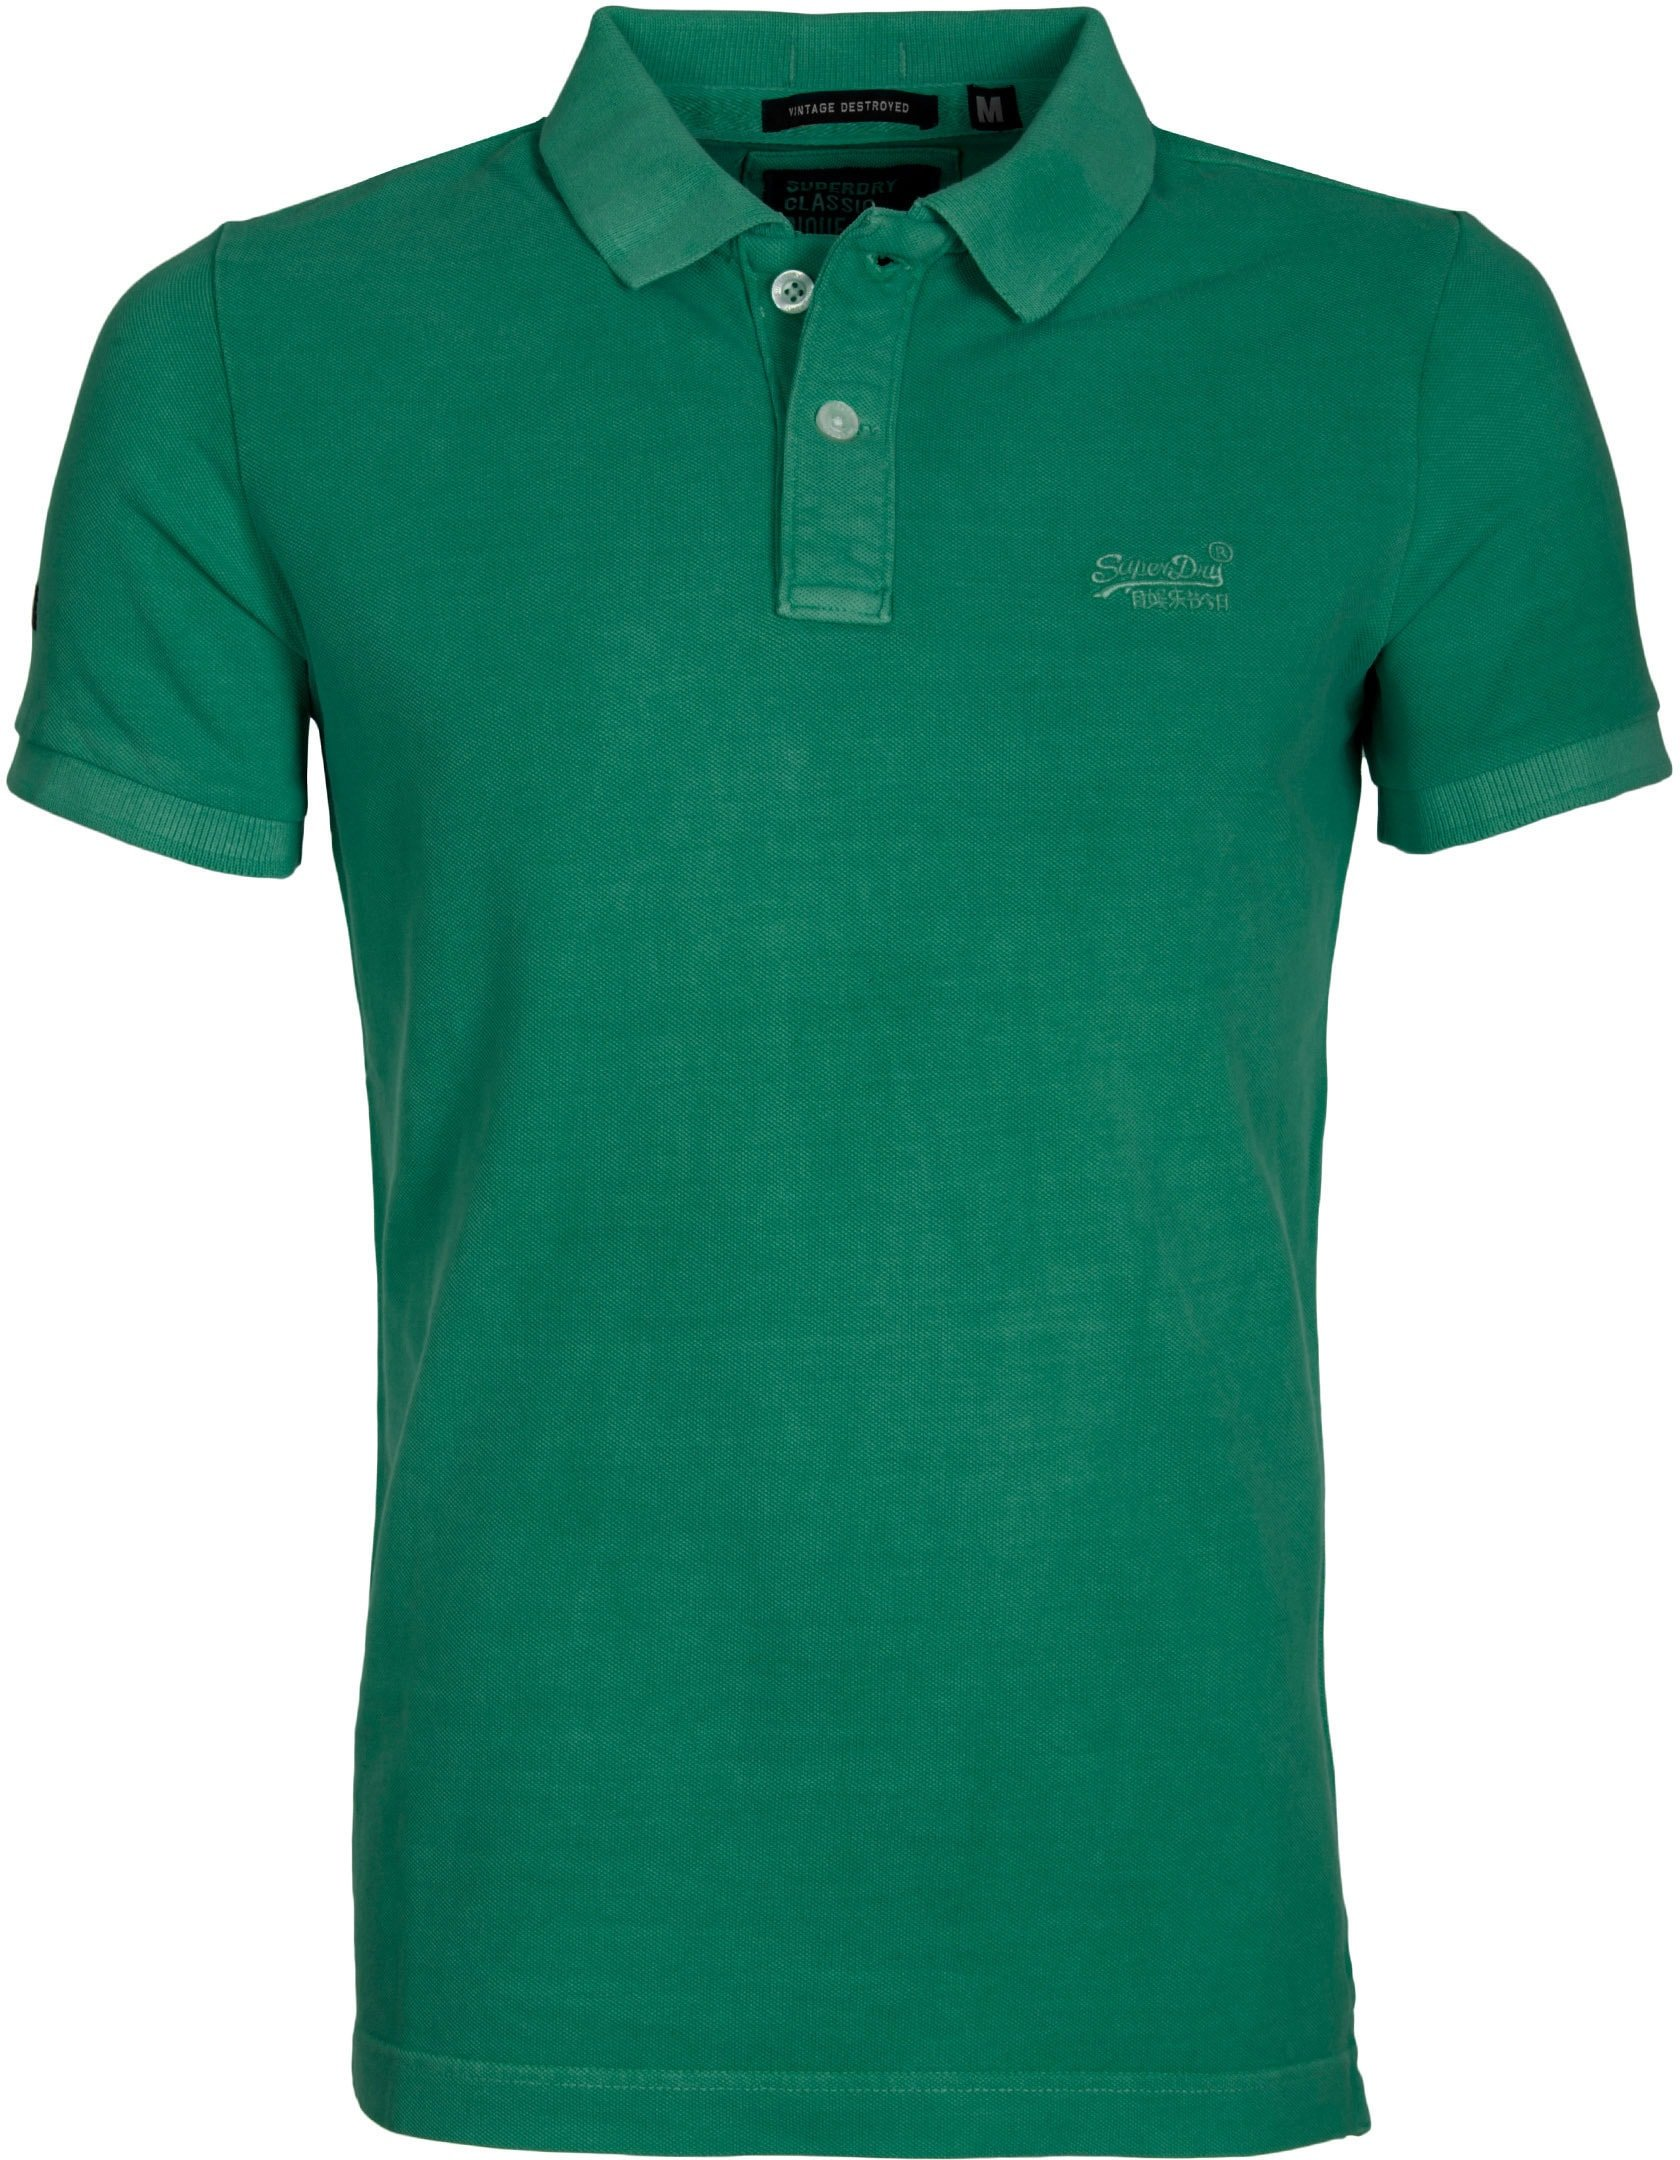 Superdry Vintage Destroyed Polo Green foto 0